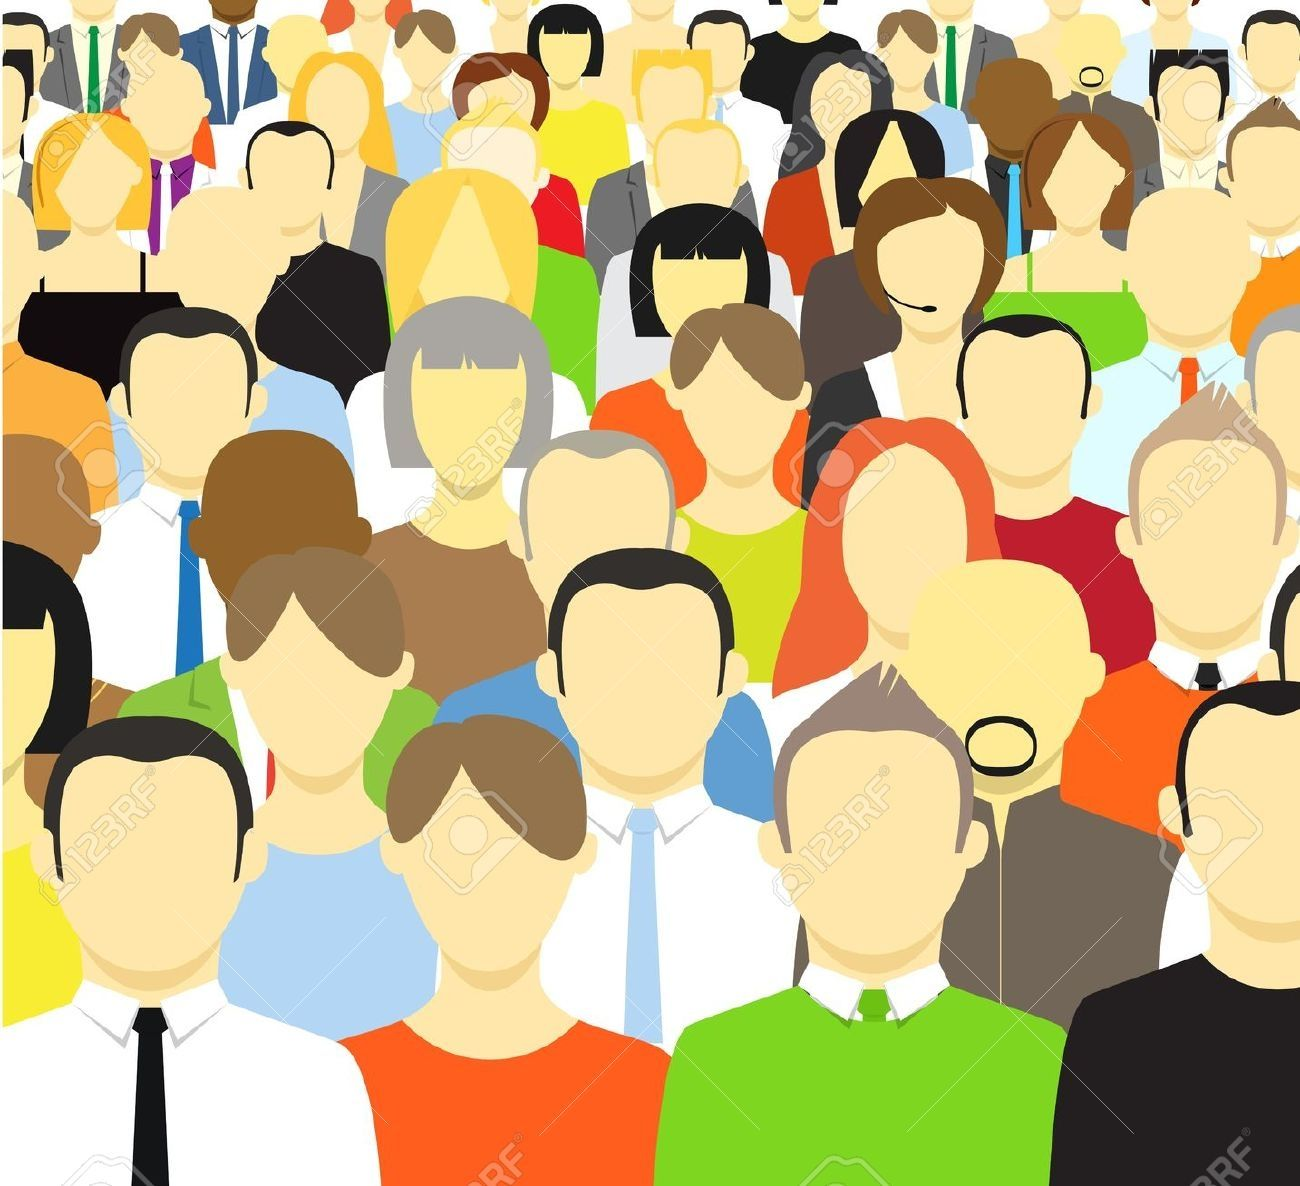 Audience clipart. Image result for backgrounds